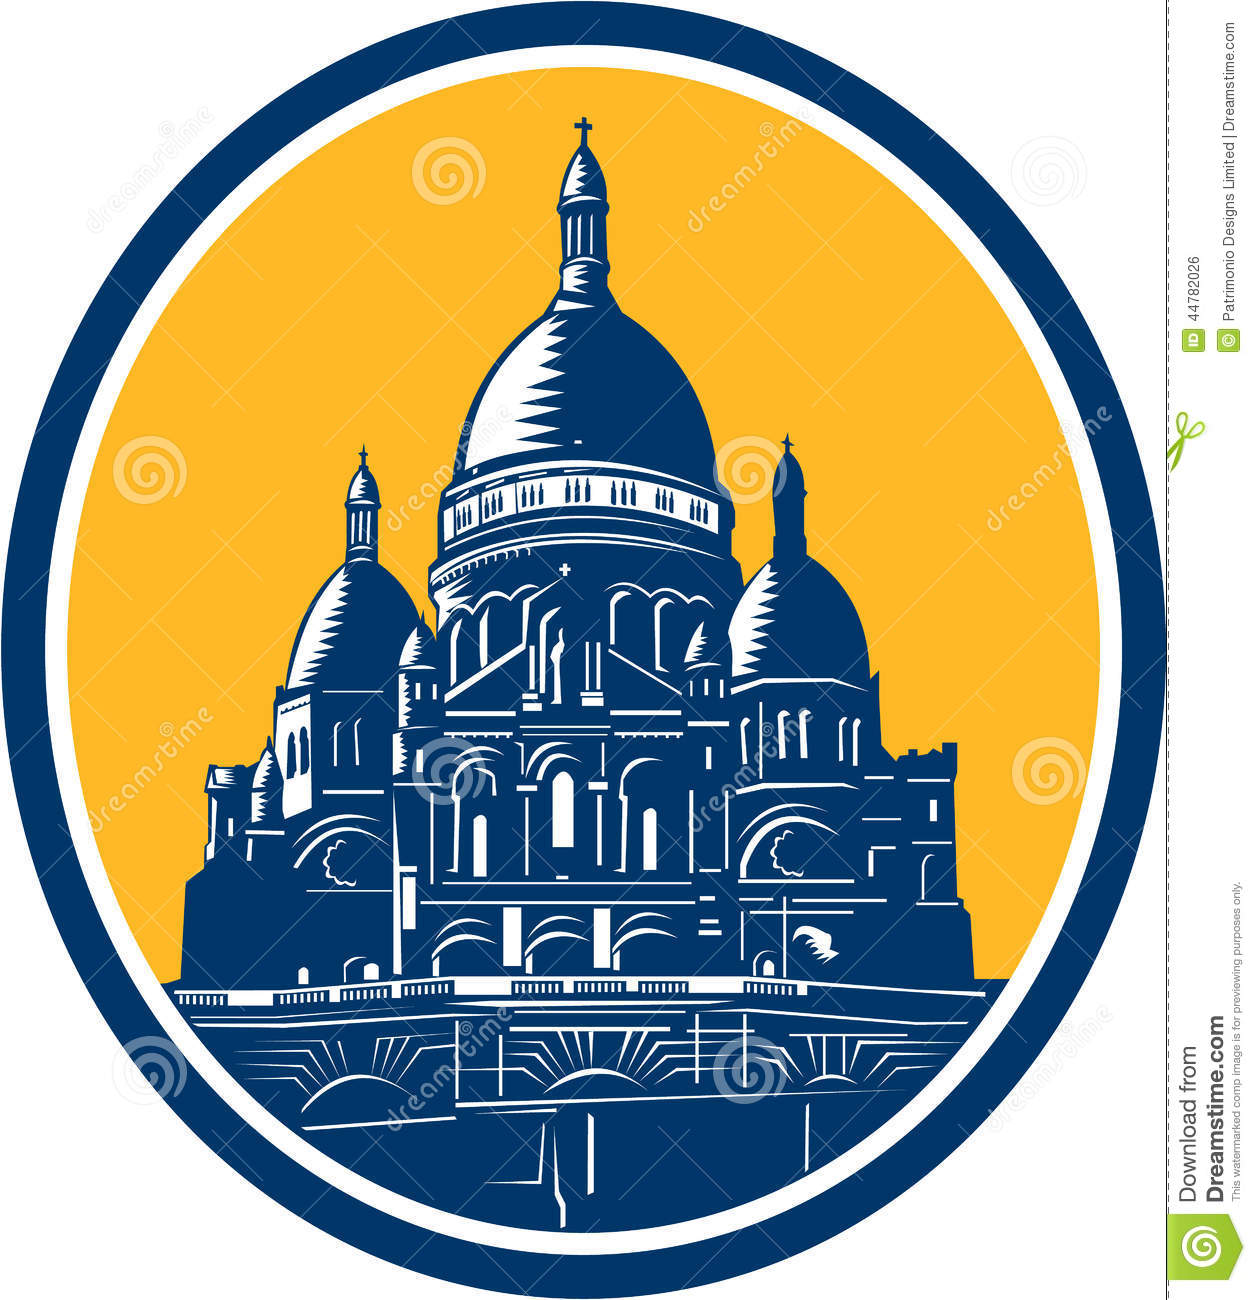 Dome Of Sacre Coeur Basilica Paris Retro Stock Vector.